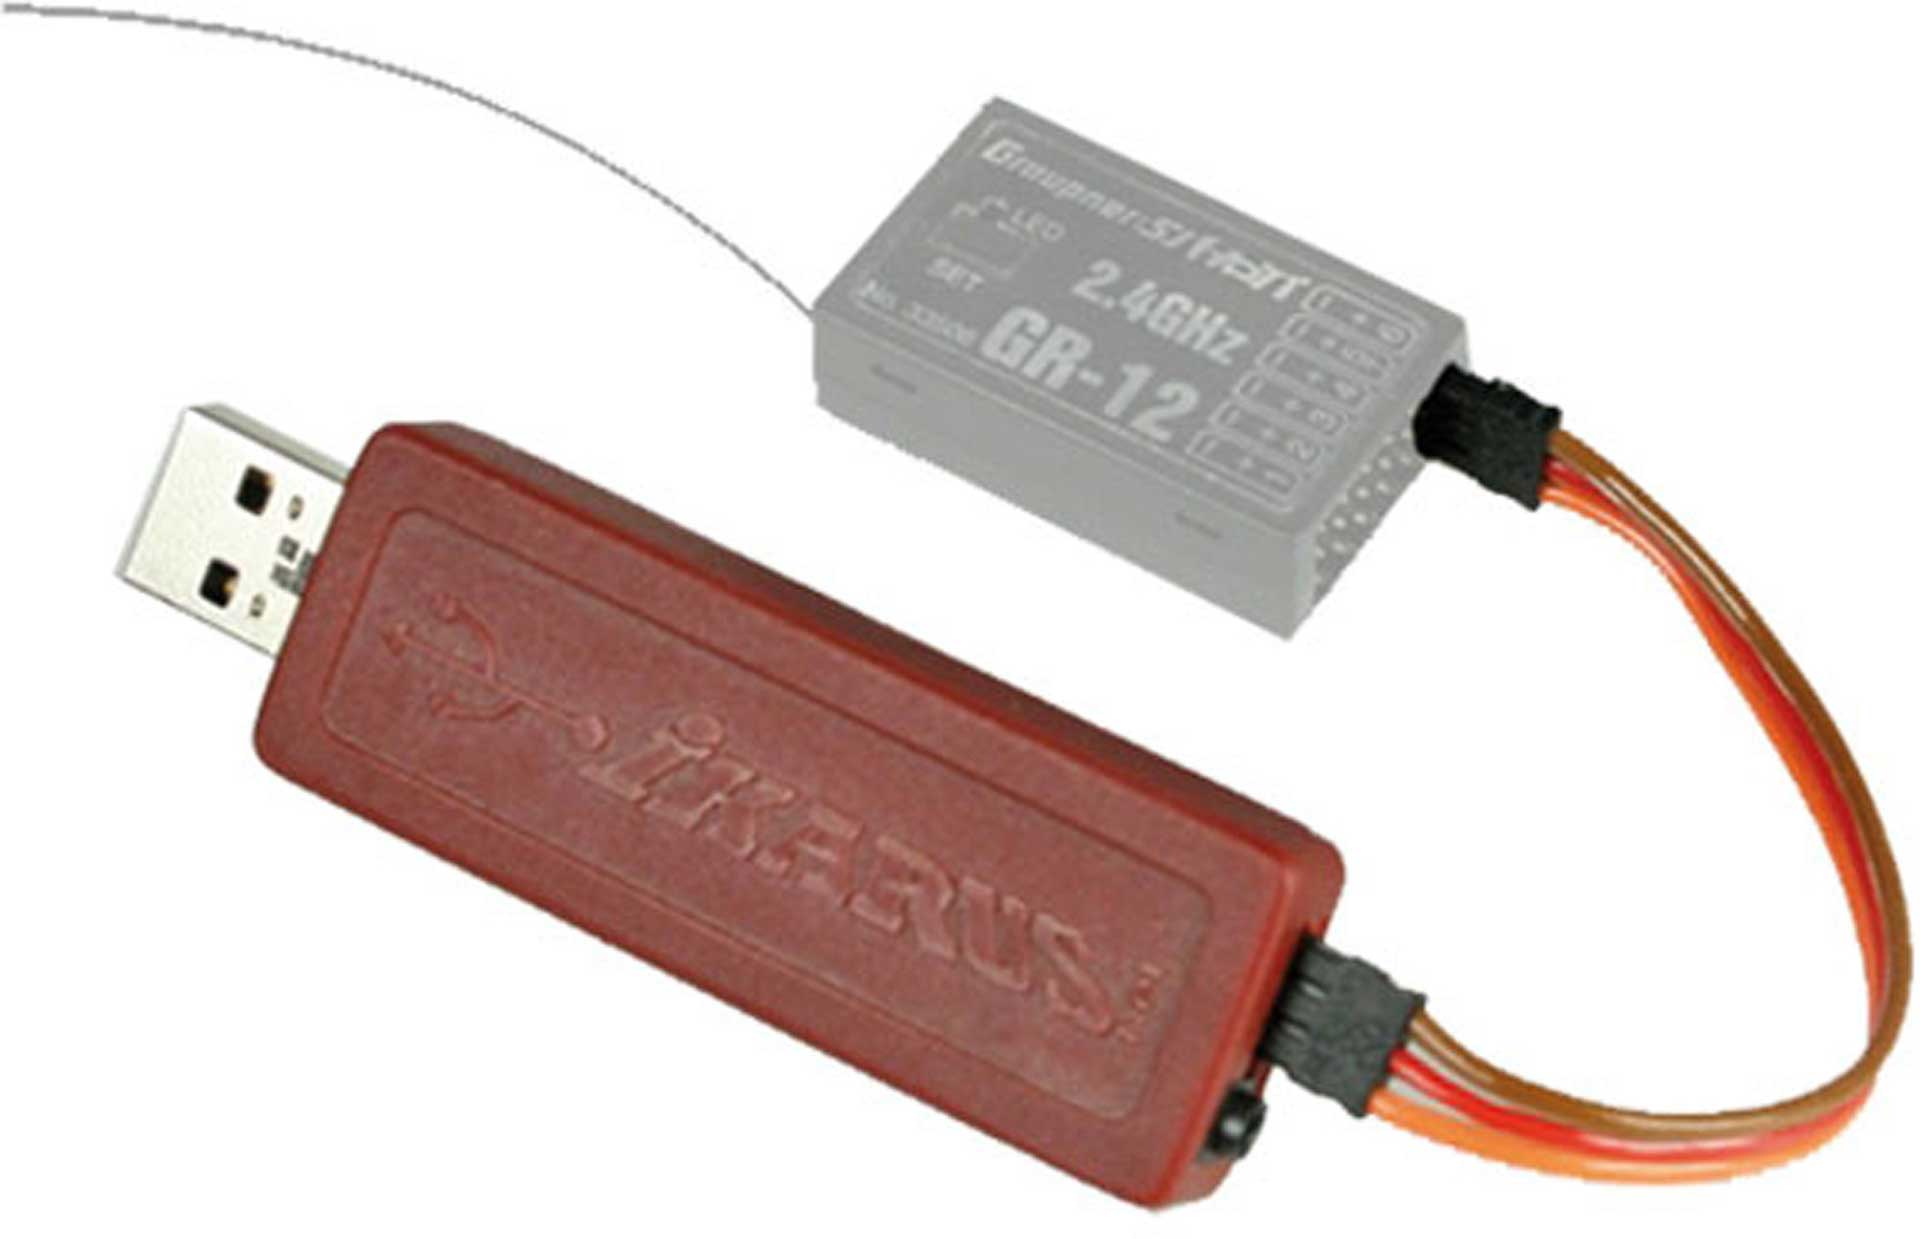 IKARUS USB-Interface für PPM (HoTT/Jeti/Core)